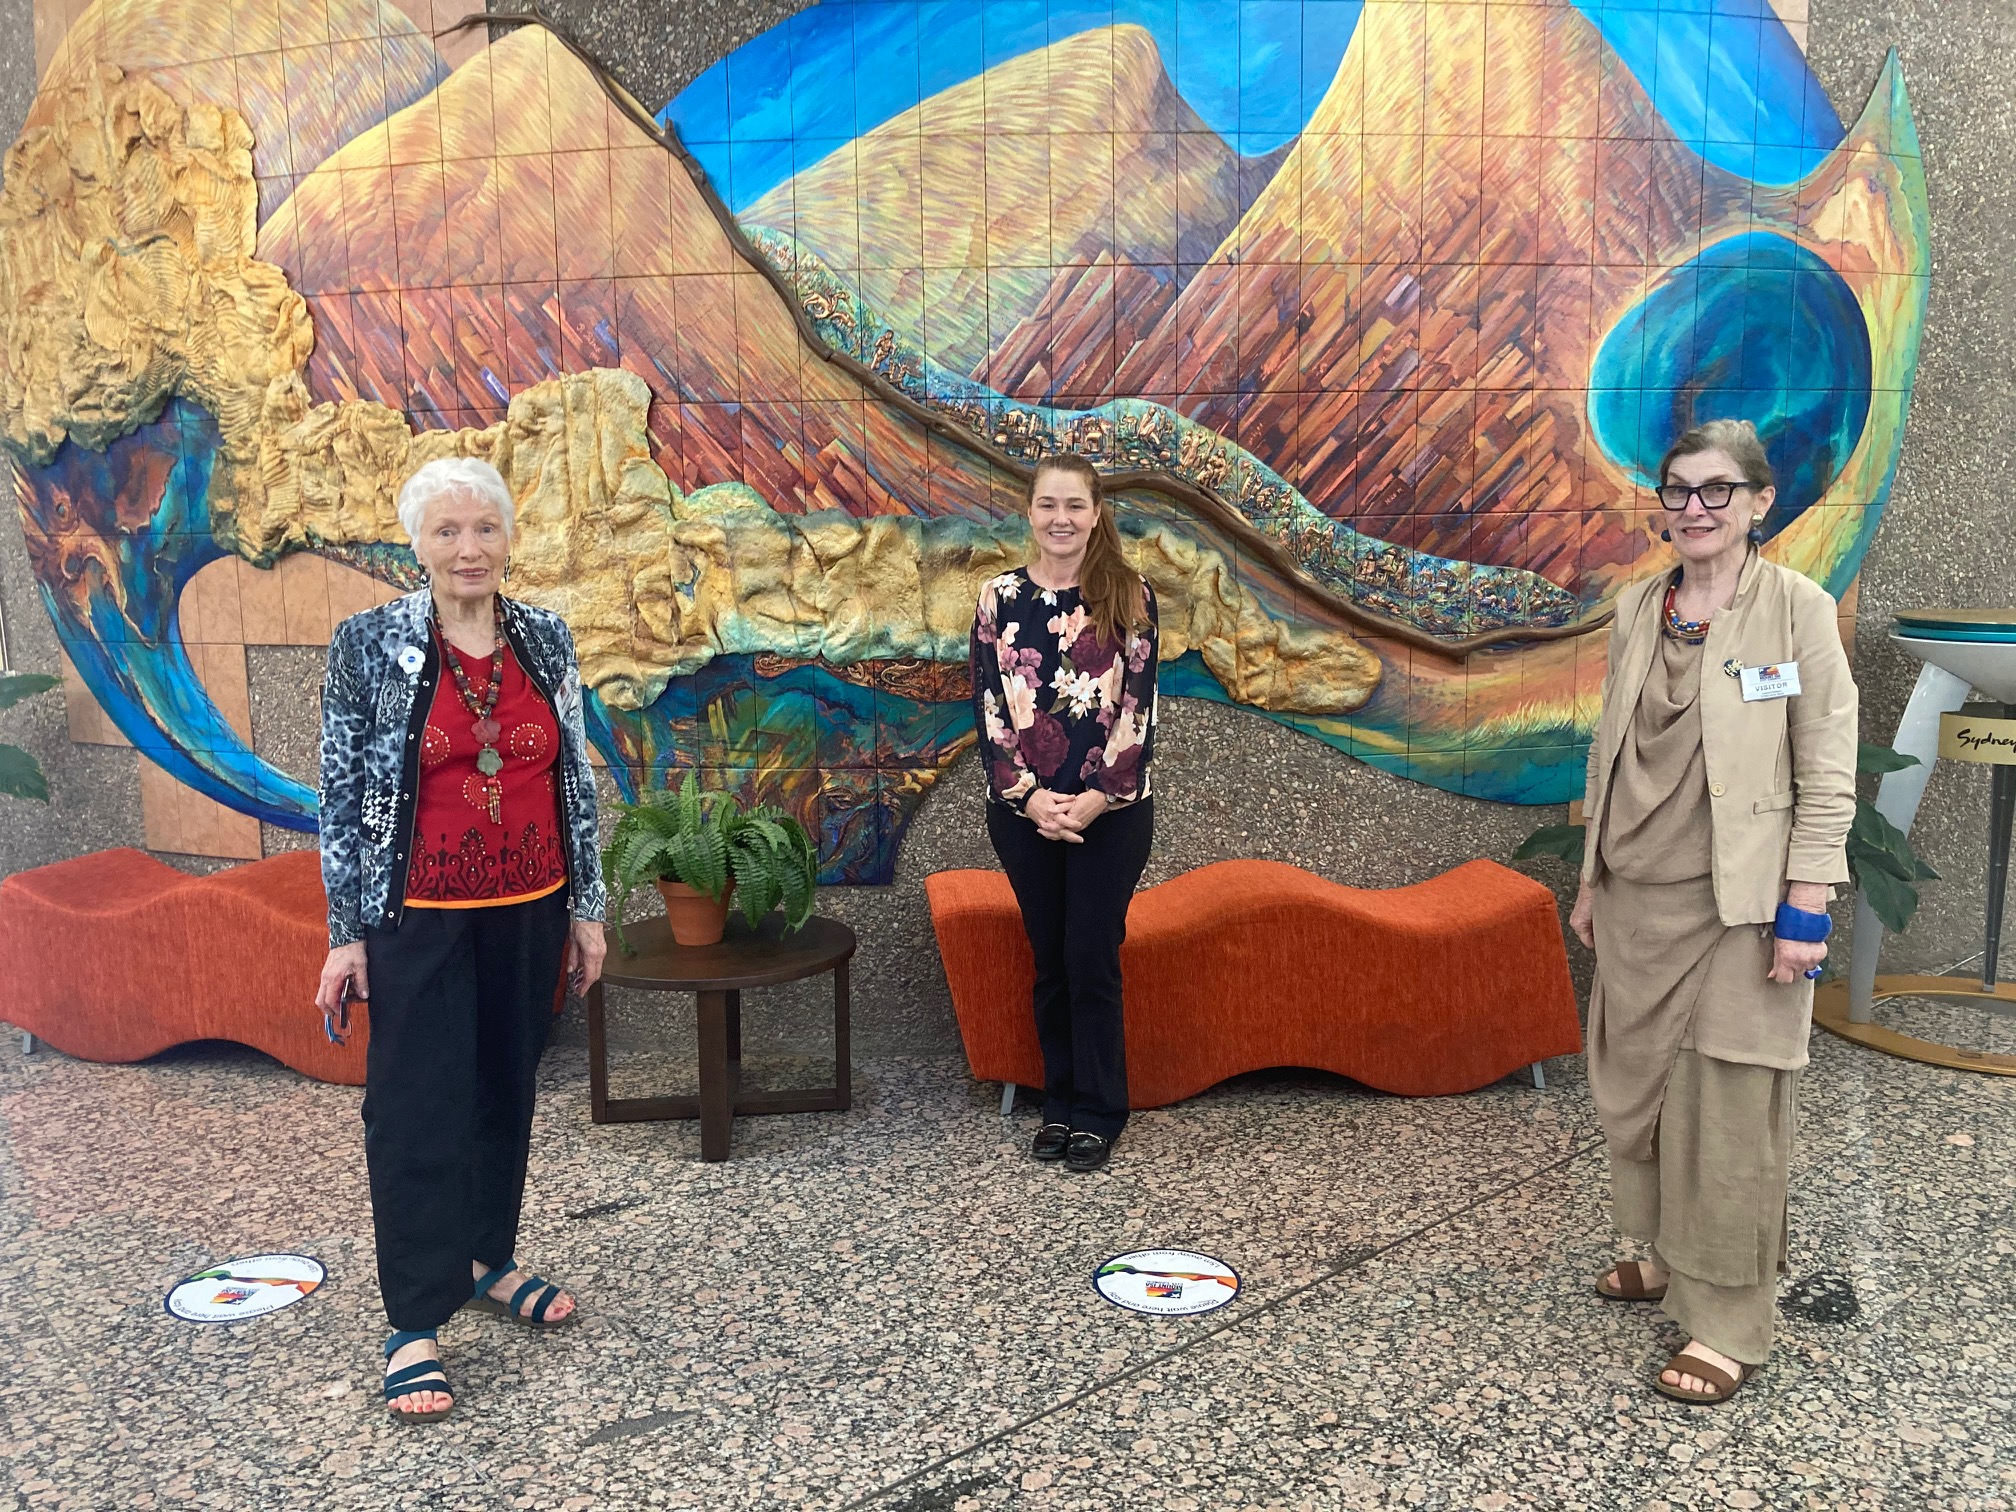 Three women, standing spaced out in front of a mural of mountains.